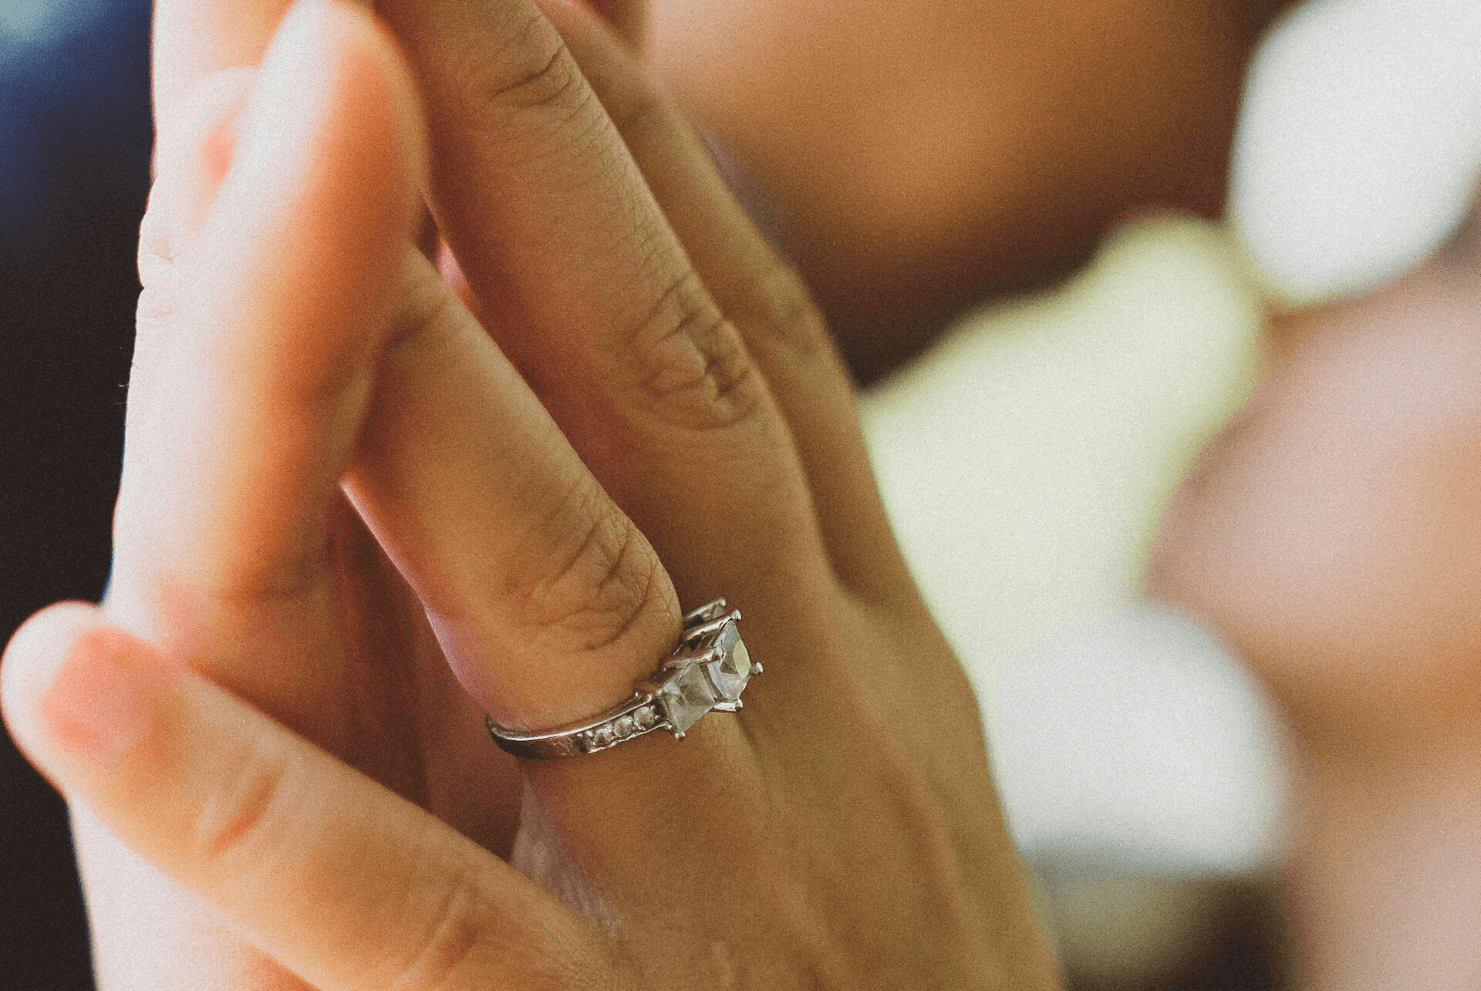 close-up photo of wedding ring on finger